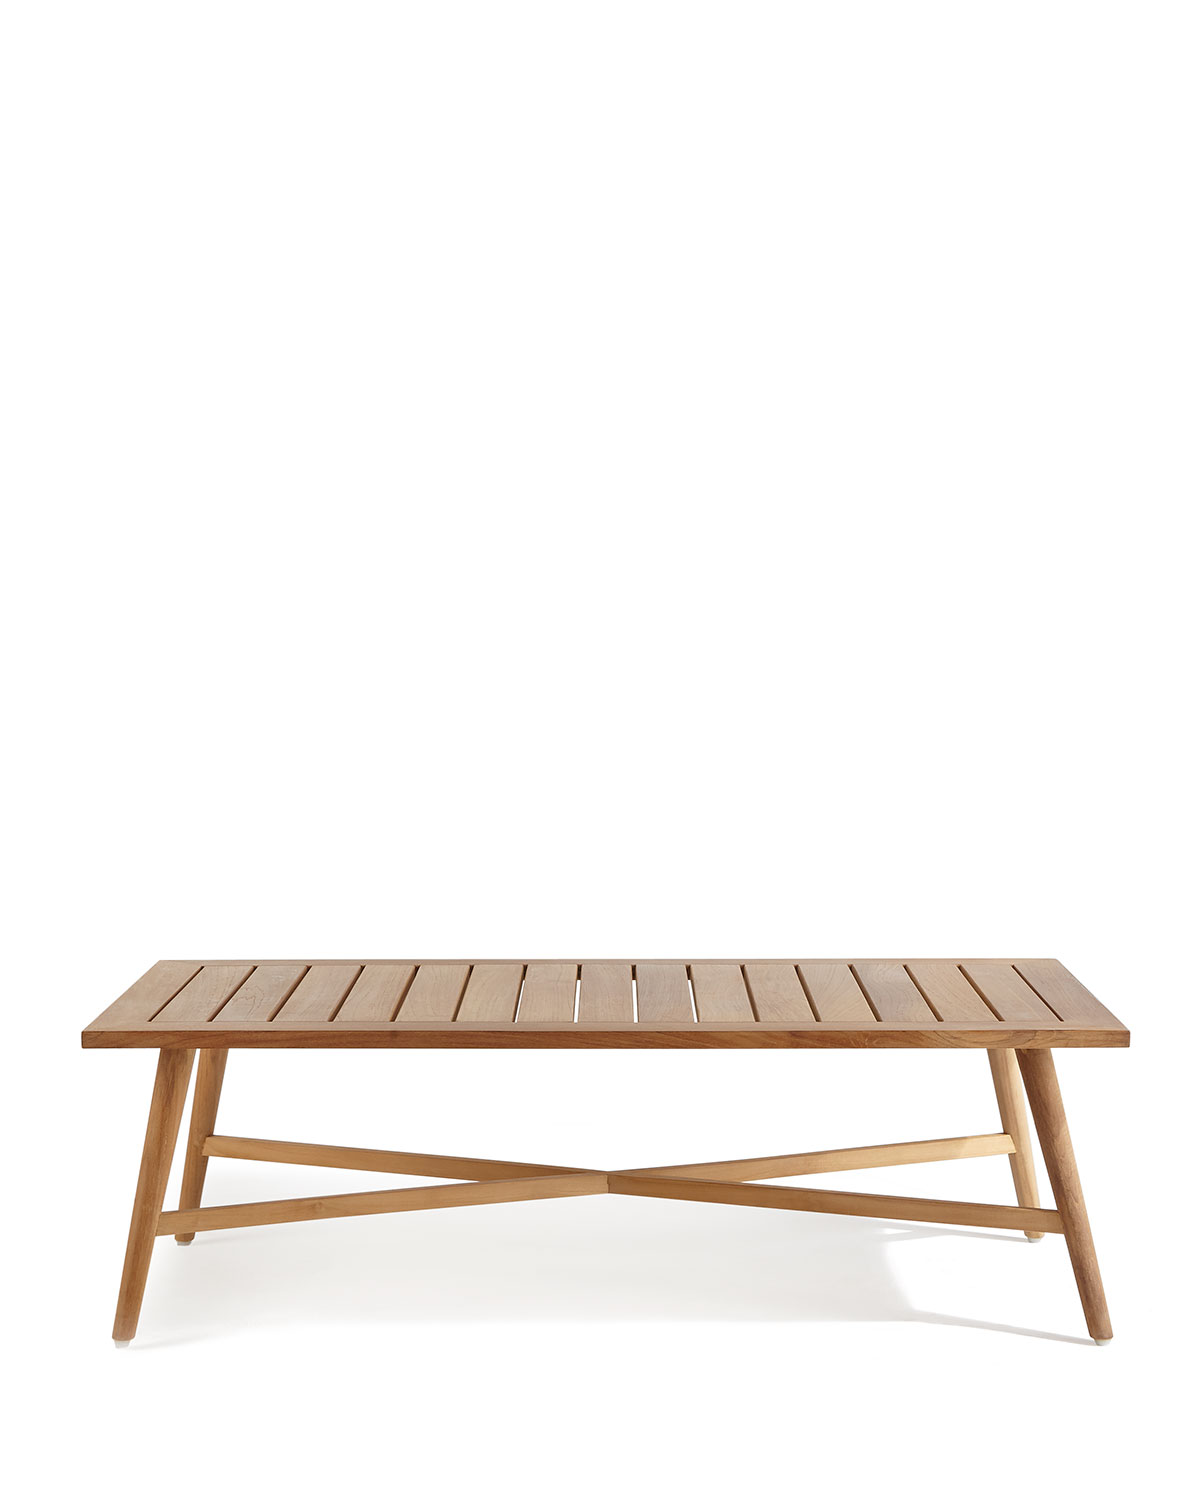 San Remo Outdoor Coffee Table